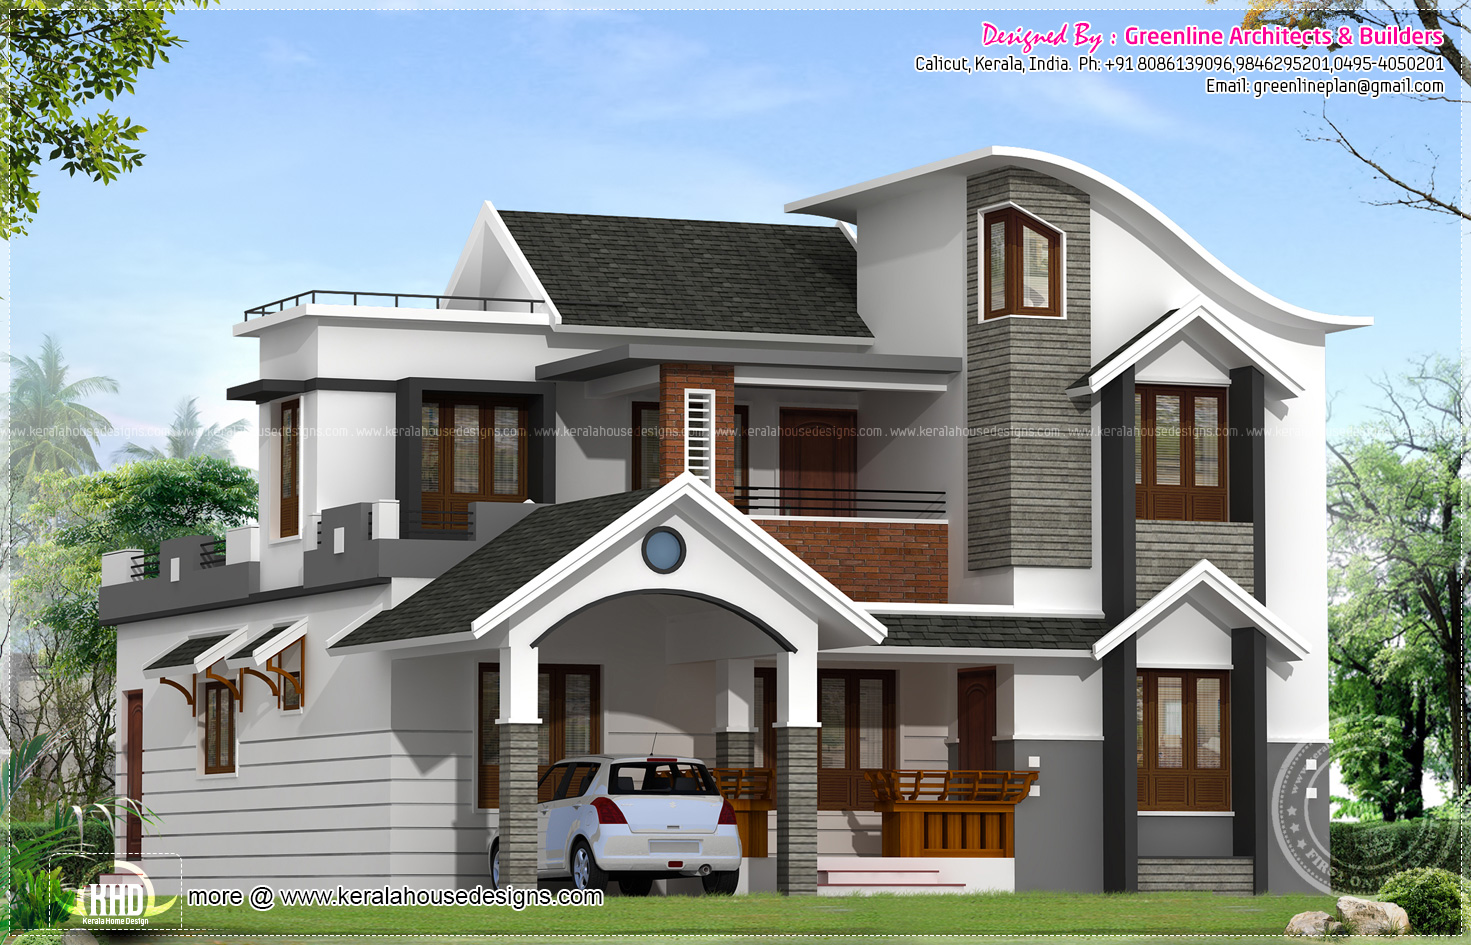 Modern house architecture in kerala kerala home design for Kerala modern house designs